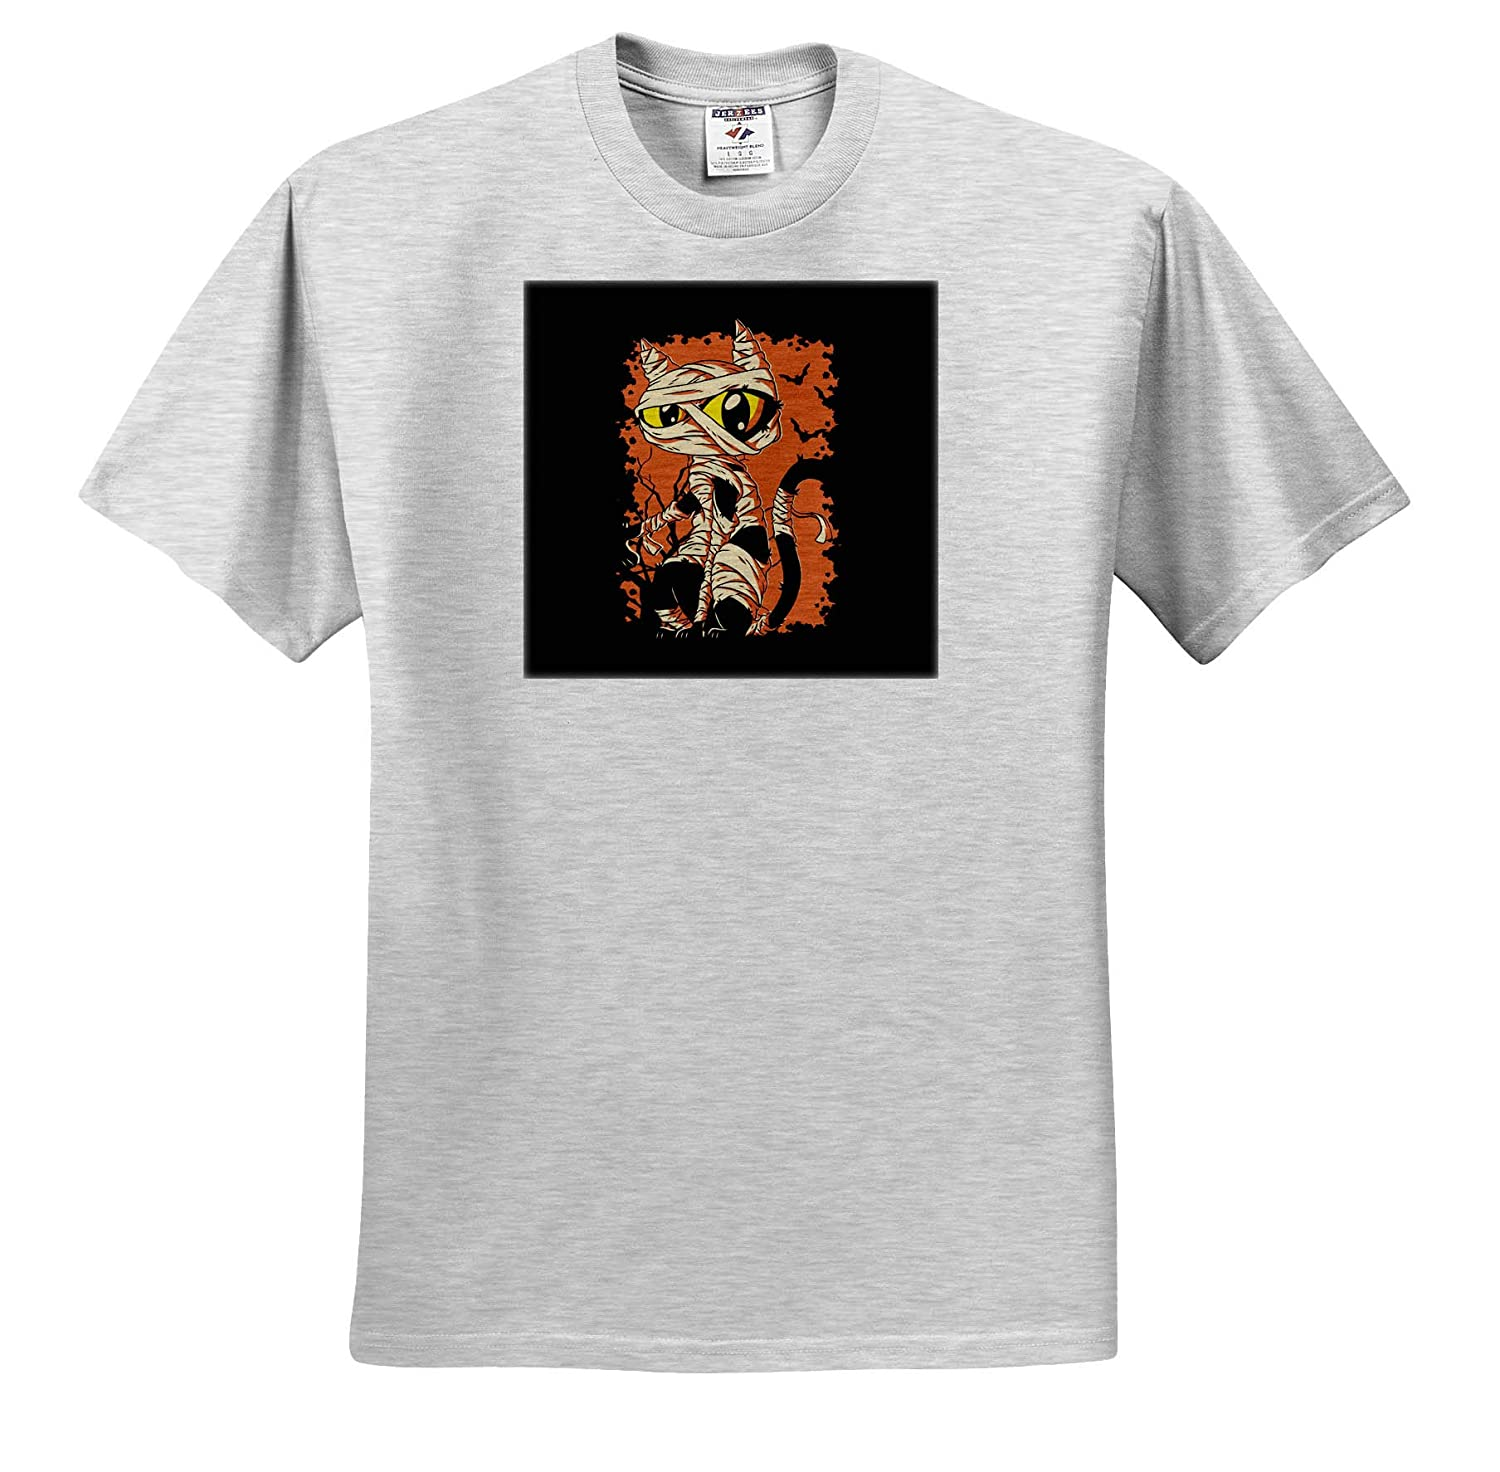 ts/_319404 Adult T-Shirt XL Funny Halloween Cat as a Pharaoh Mummy Egypt 3dRose Sven Herkenrath Fantasy